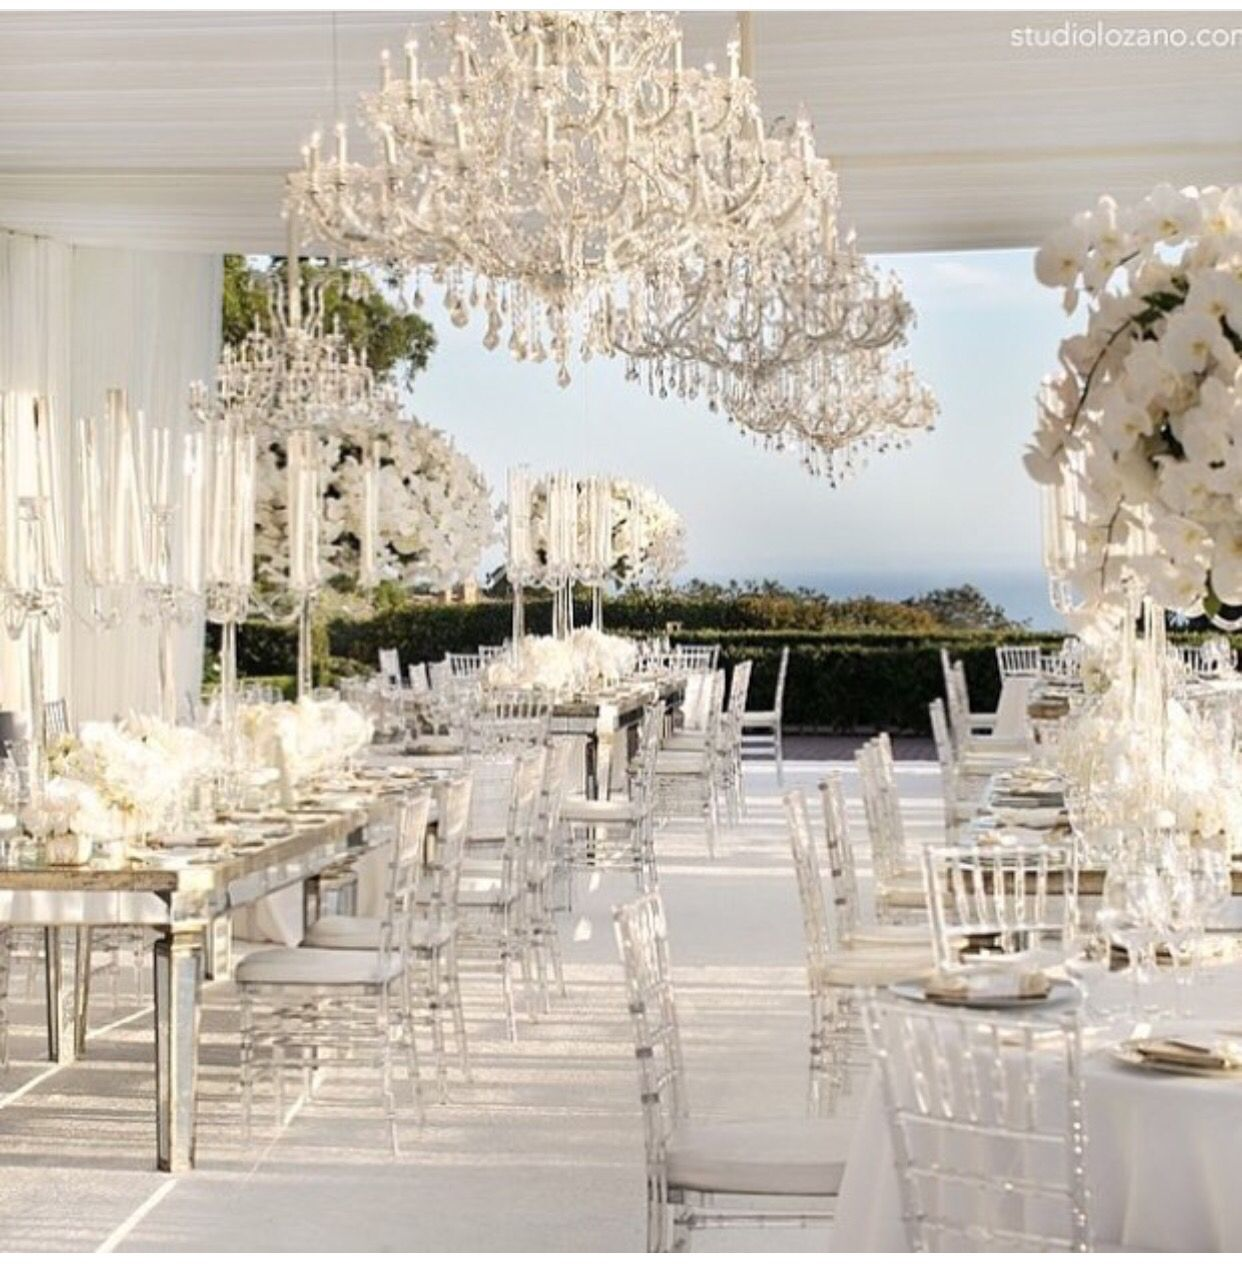 Cheap Wedding Reception Venue Ideas: White And Clear Centerpiece A And Decorations; Very Clean